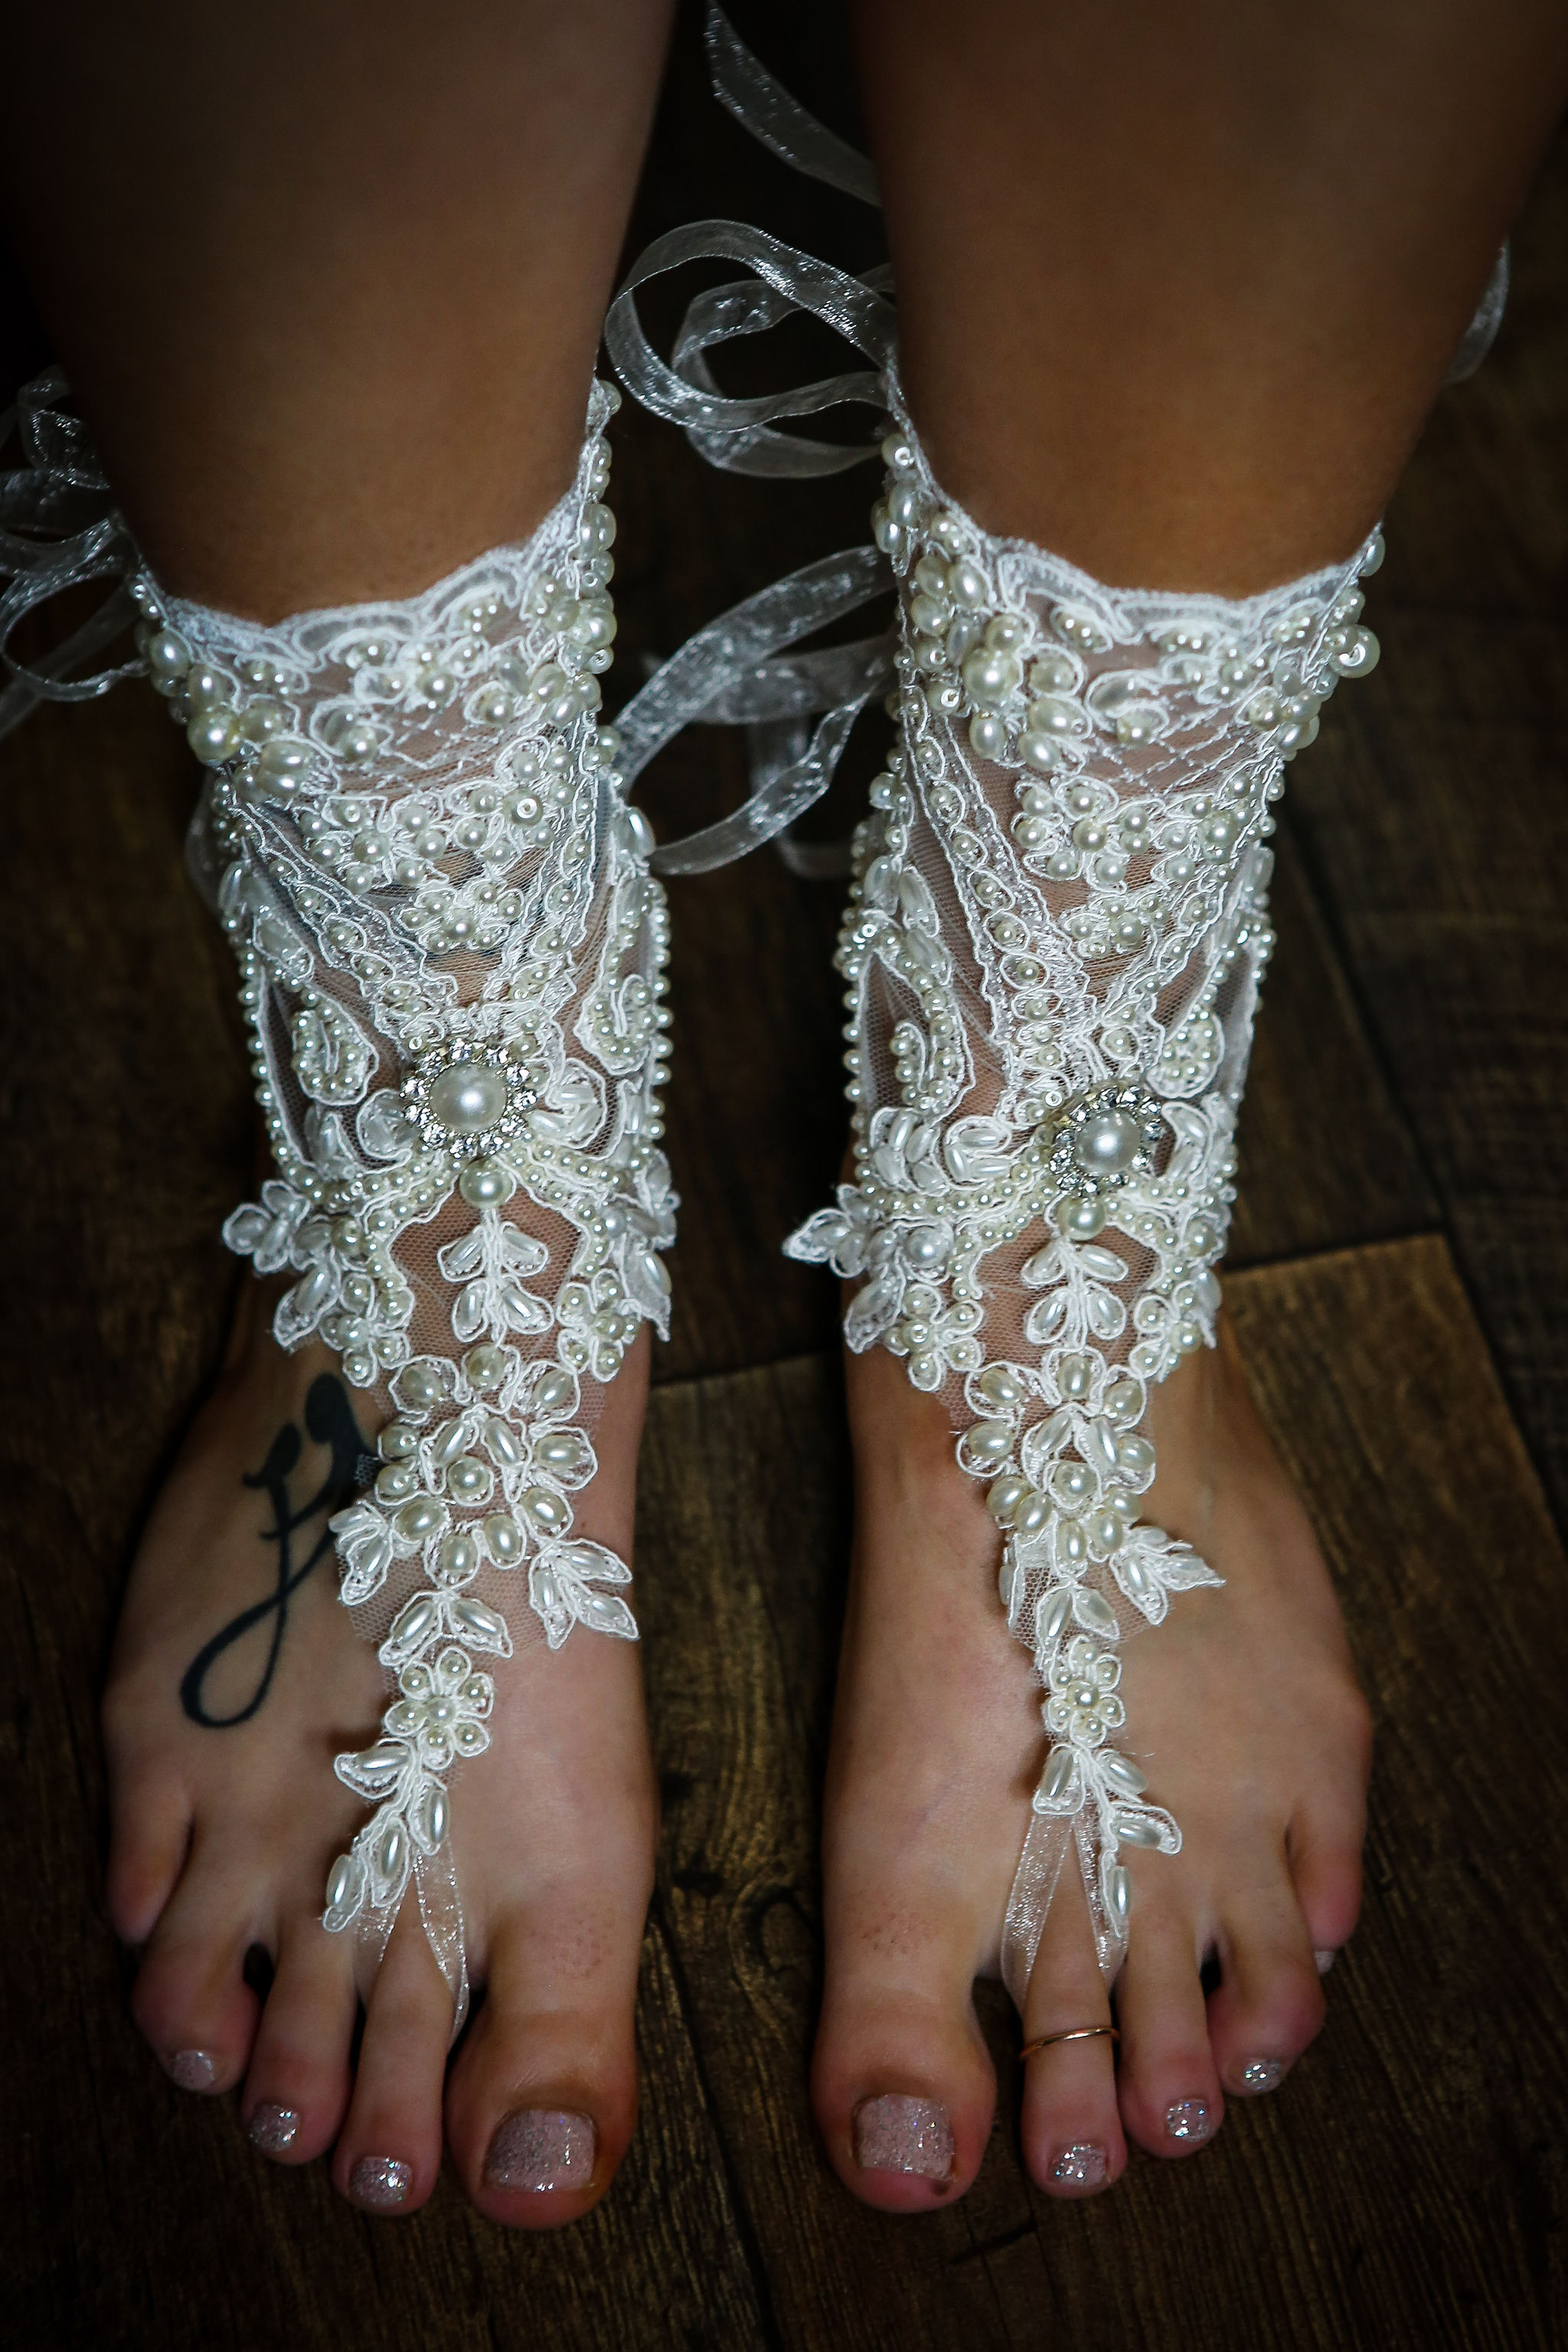 Harriet&Rhys Wedding - lace wedding footwear - wedding accessories